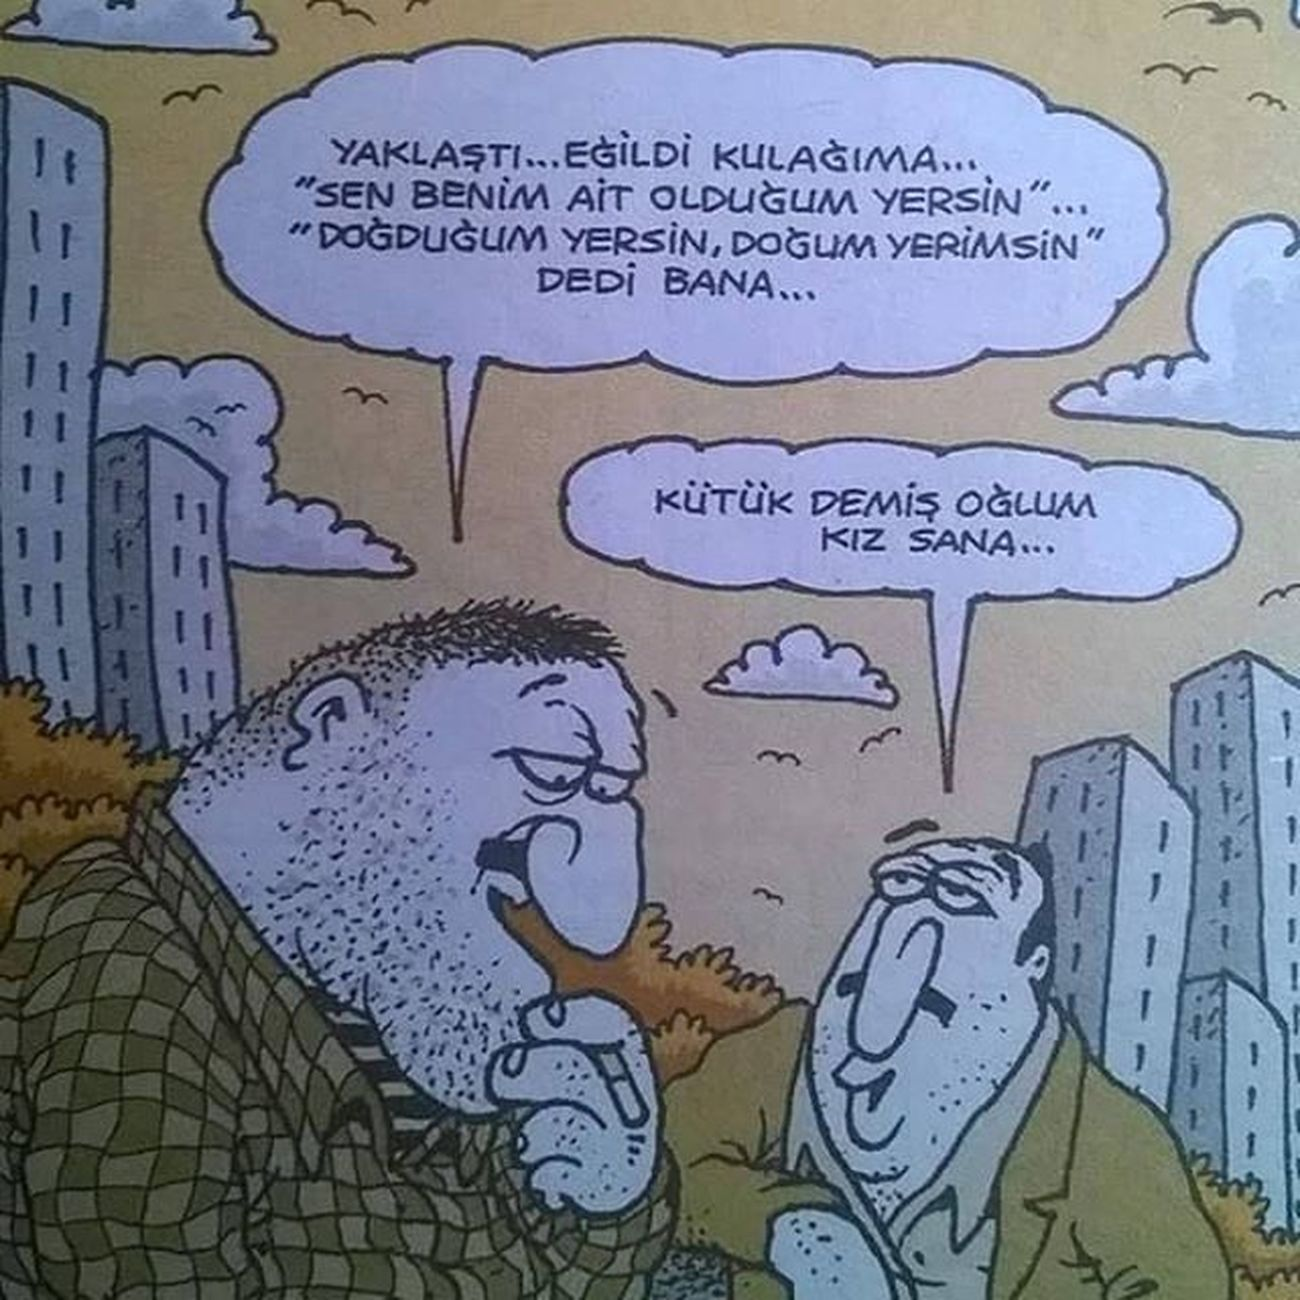 Odun demis ozetle 😁😁😁😁 Komik Karikatur Karikatur Mizah Eğlence Eglenceli Komedi Penguen Girgir Uykusuz Caps Istanbul Fun Funny Love Instagood Me TBT  Follow Cute Followme Happy Photooftheday Beautiful Girl like4like picoftheday photoremphin life